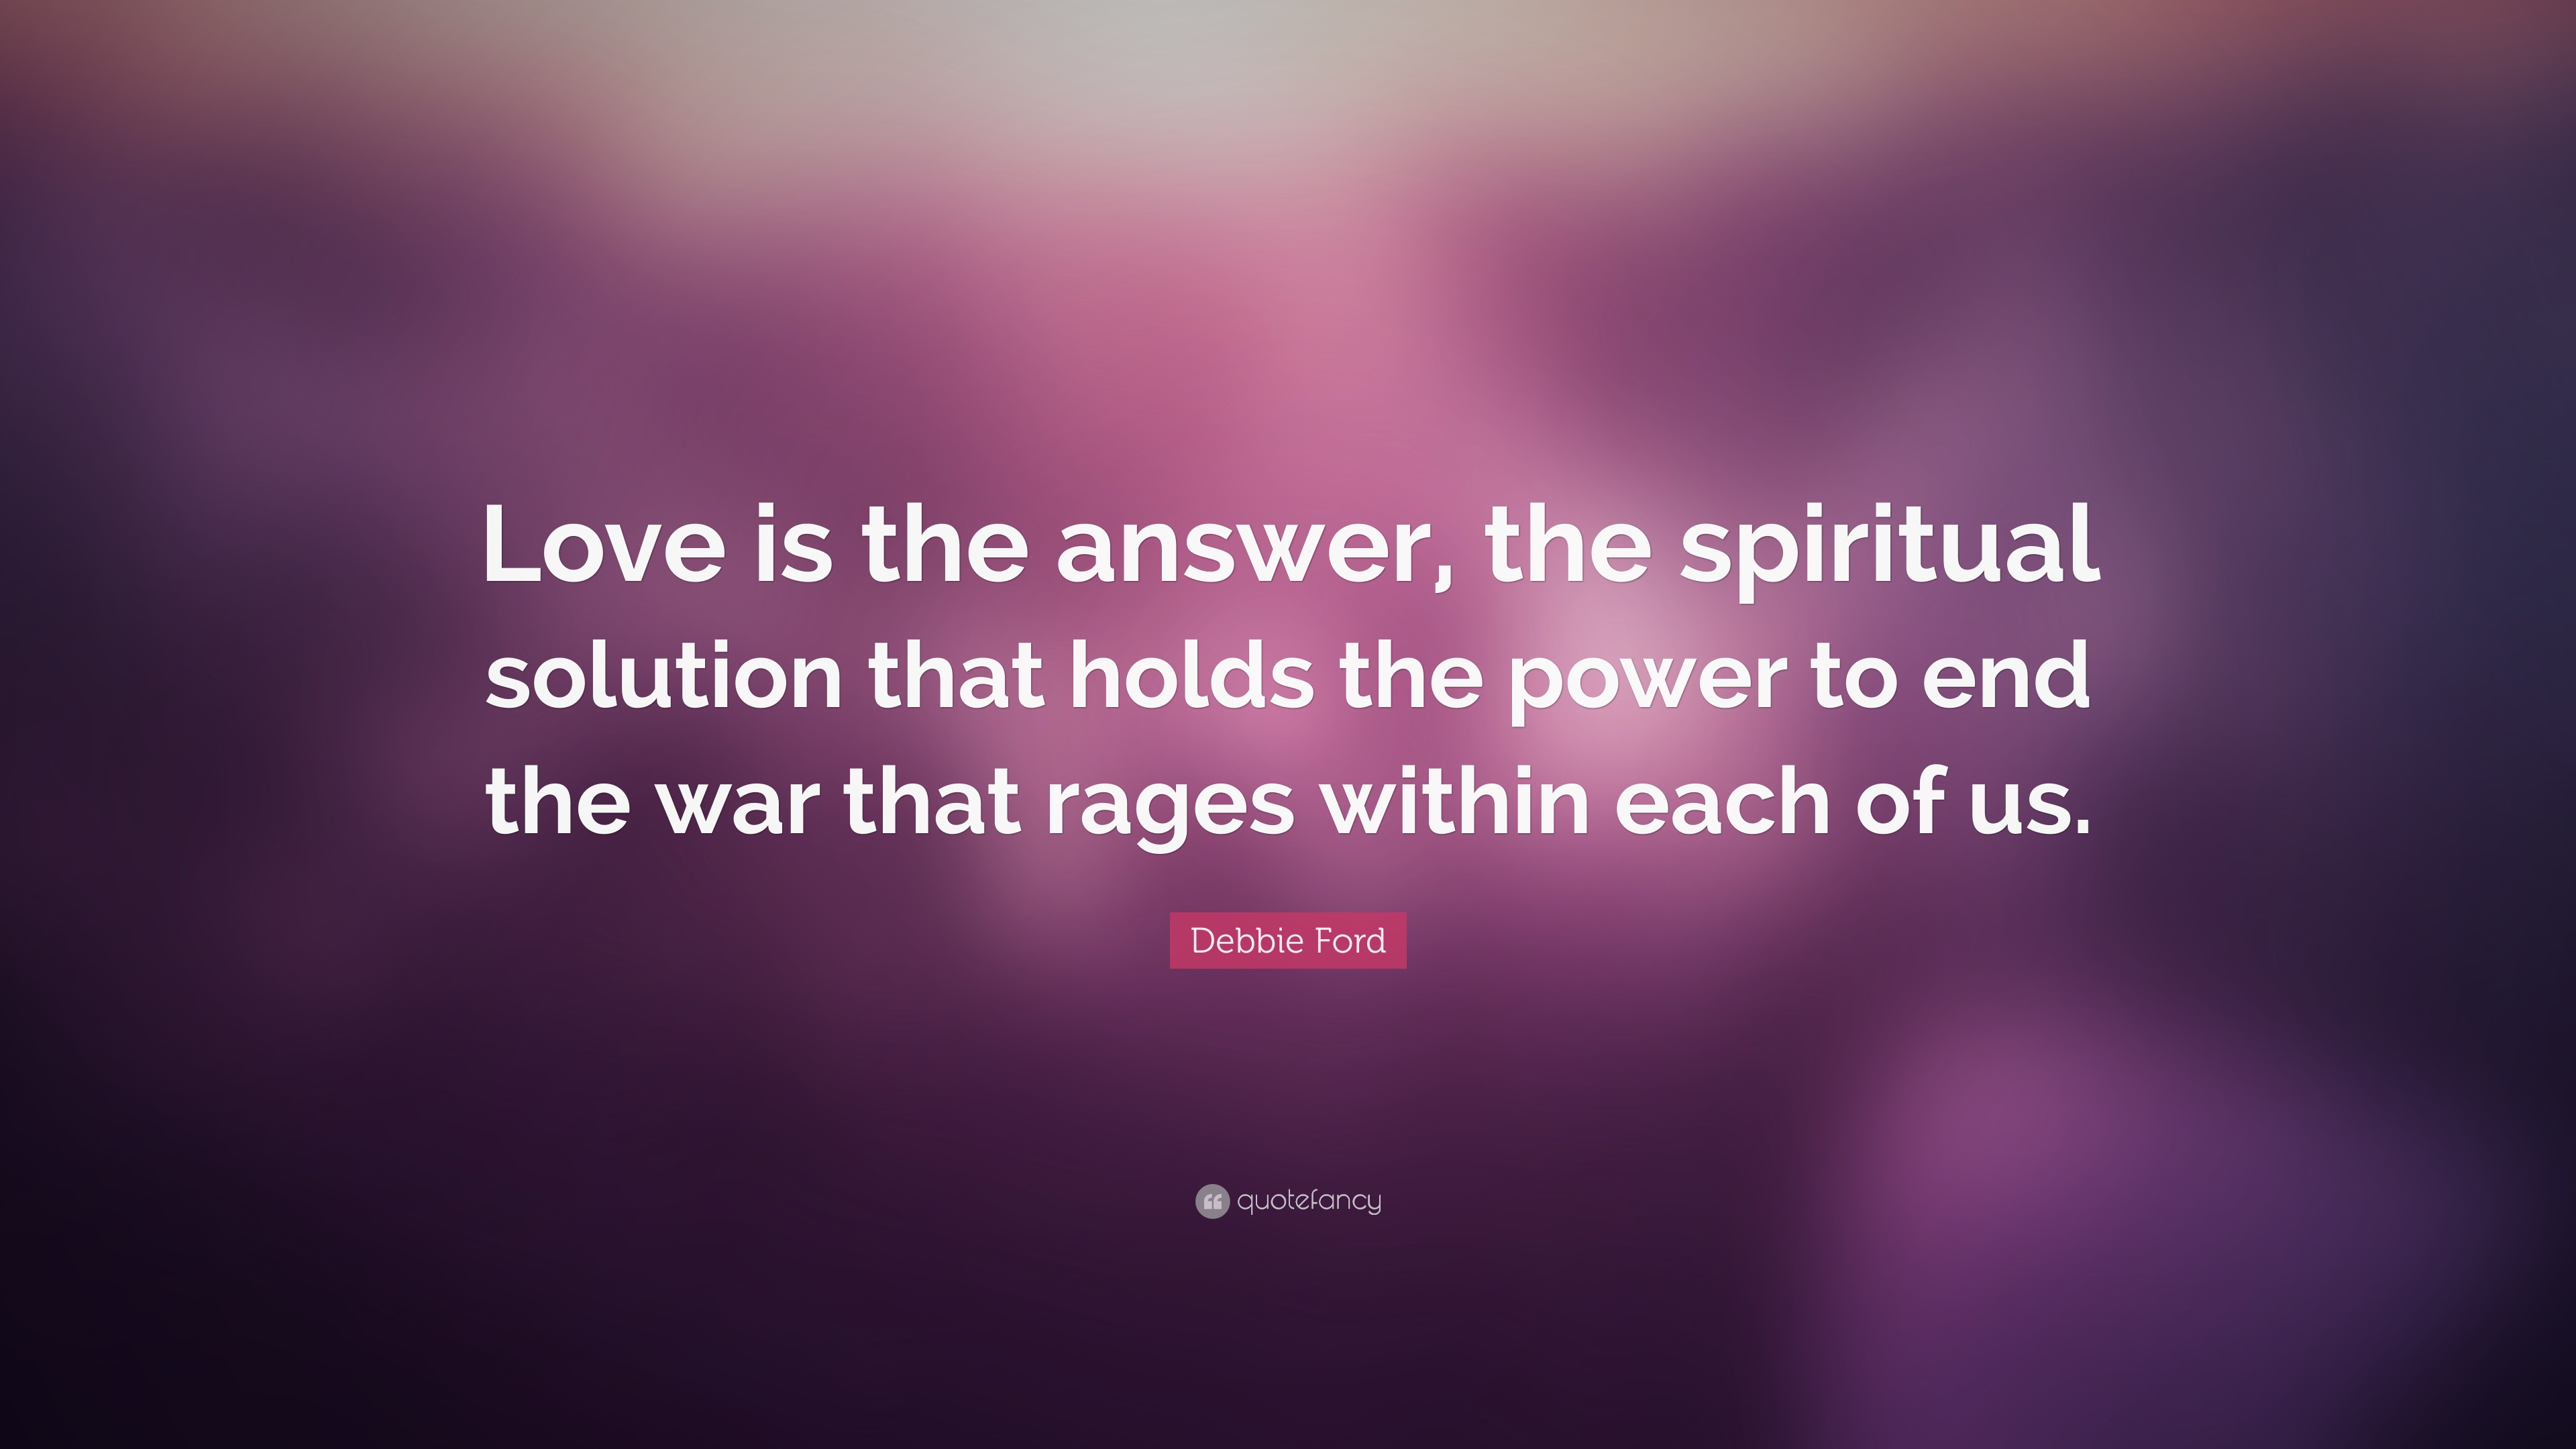 debbie ford quote love is the answer the spiritual solution that holds the power to end the. Black Bedroom Furniture Sets. Home Design Ideas